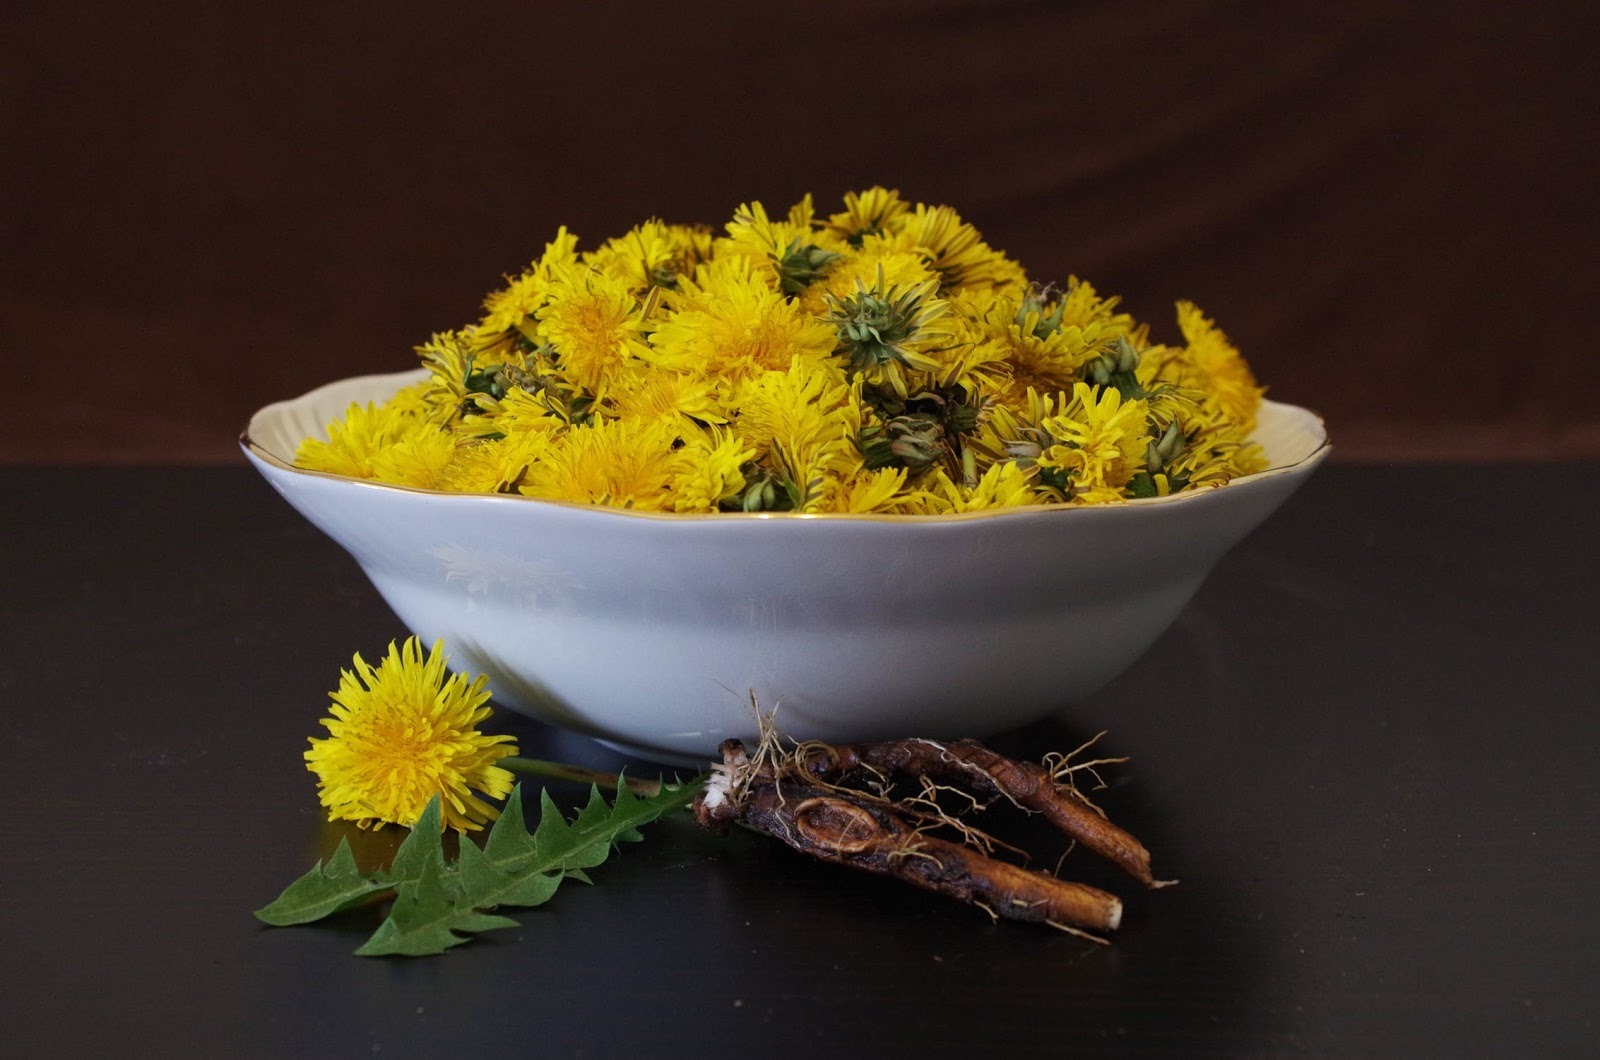 How to make roasted and fresh dandelion tea from your garden cup how to make roasted and fresh dandelion tea from your garden izmirmasajfo